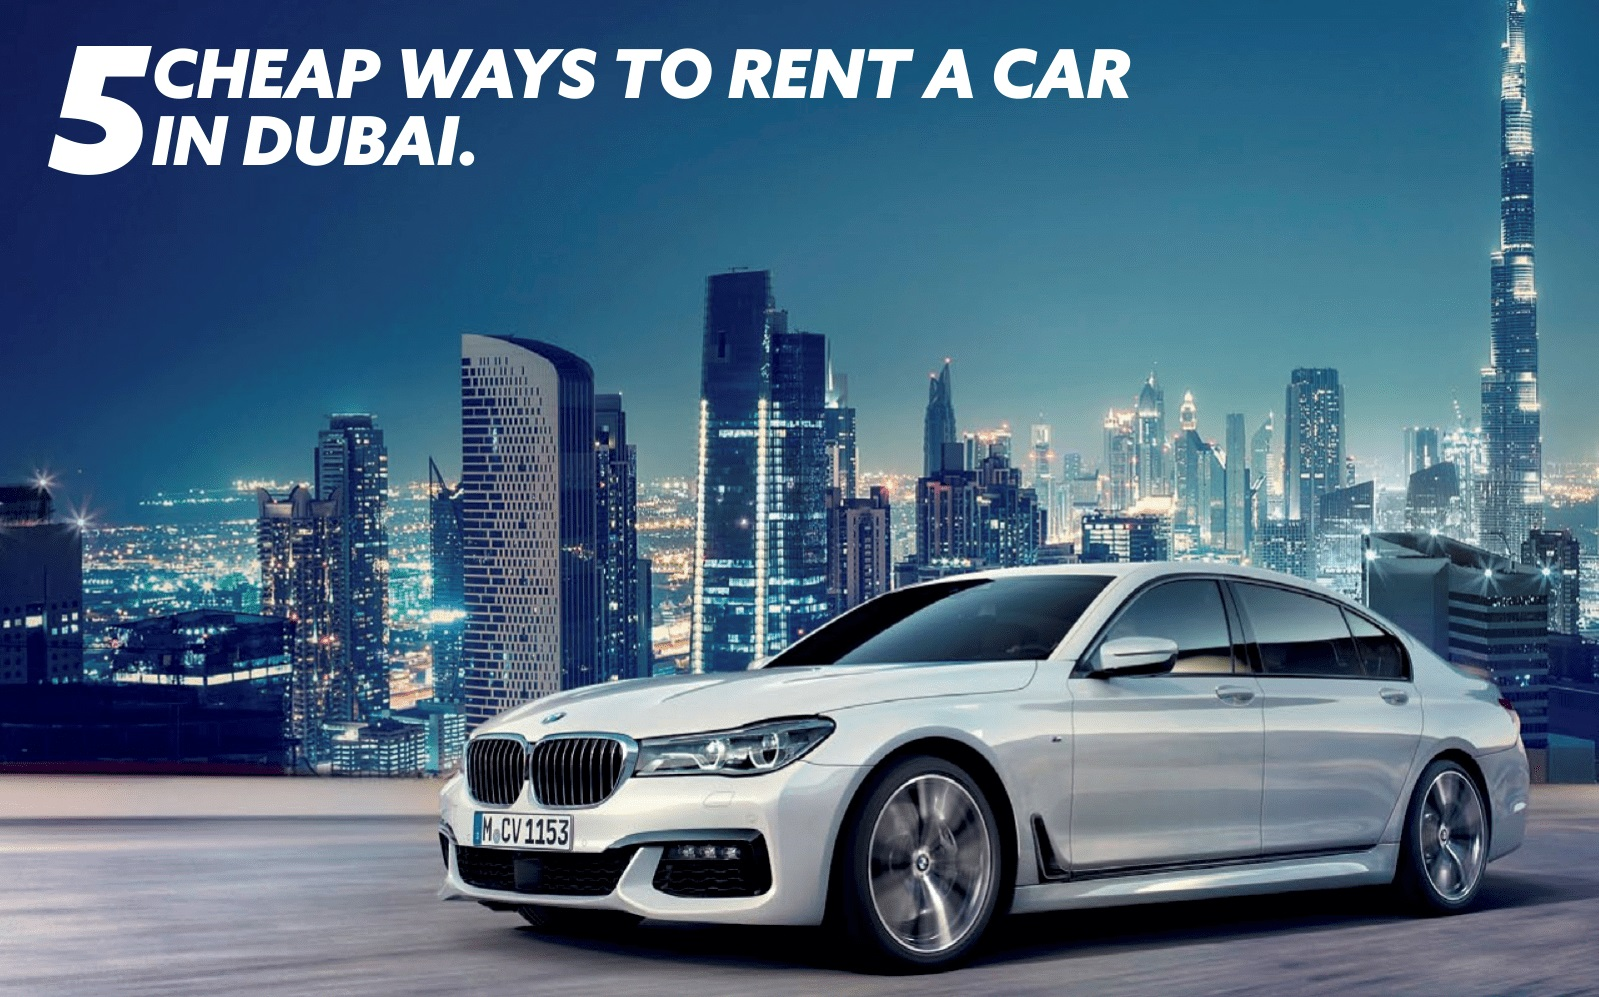 5 Cheap Ways to Rent a Car on Monthly Basis in Dubai |Tripjohn.com